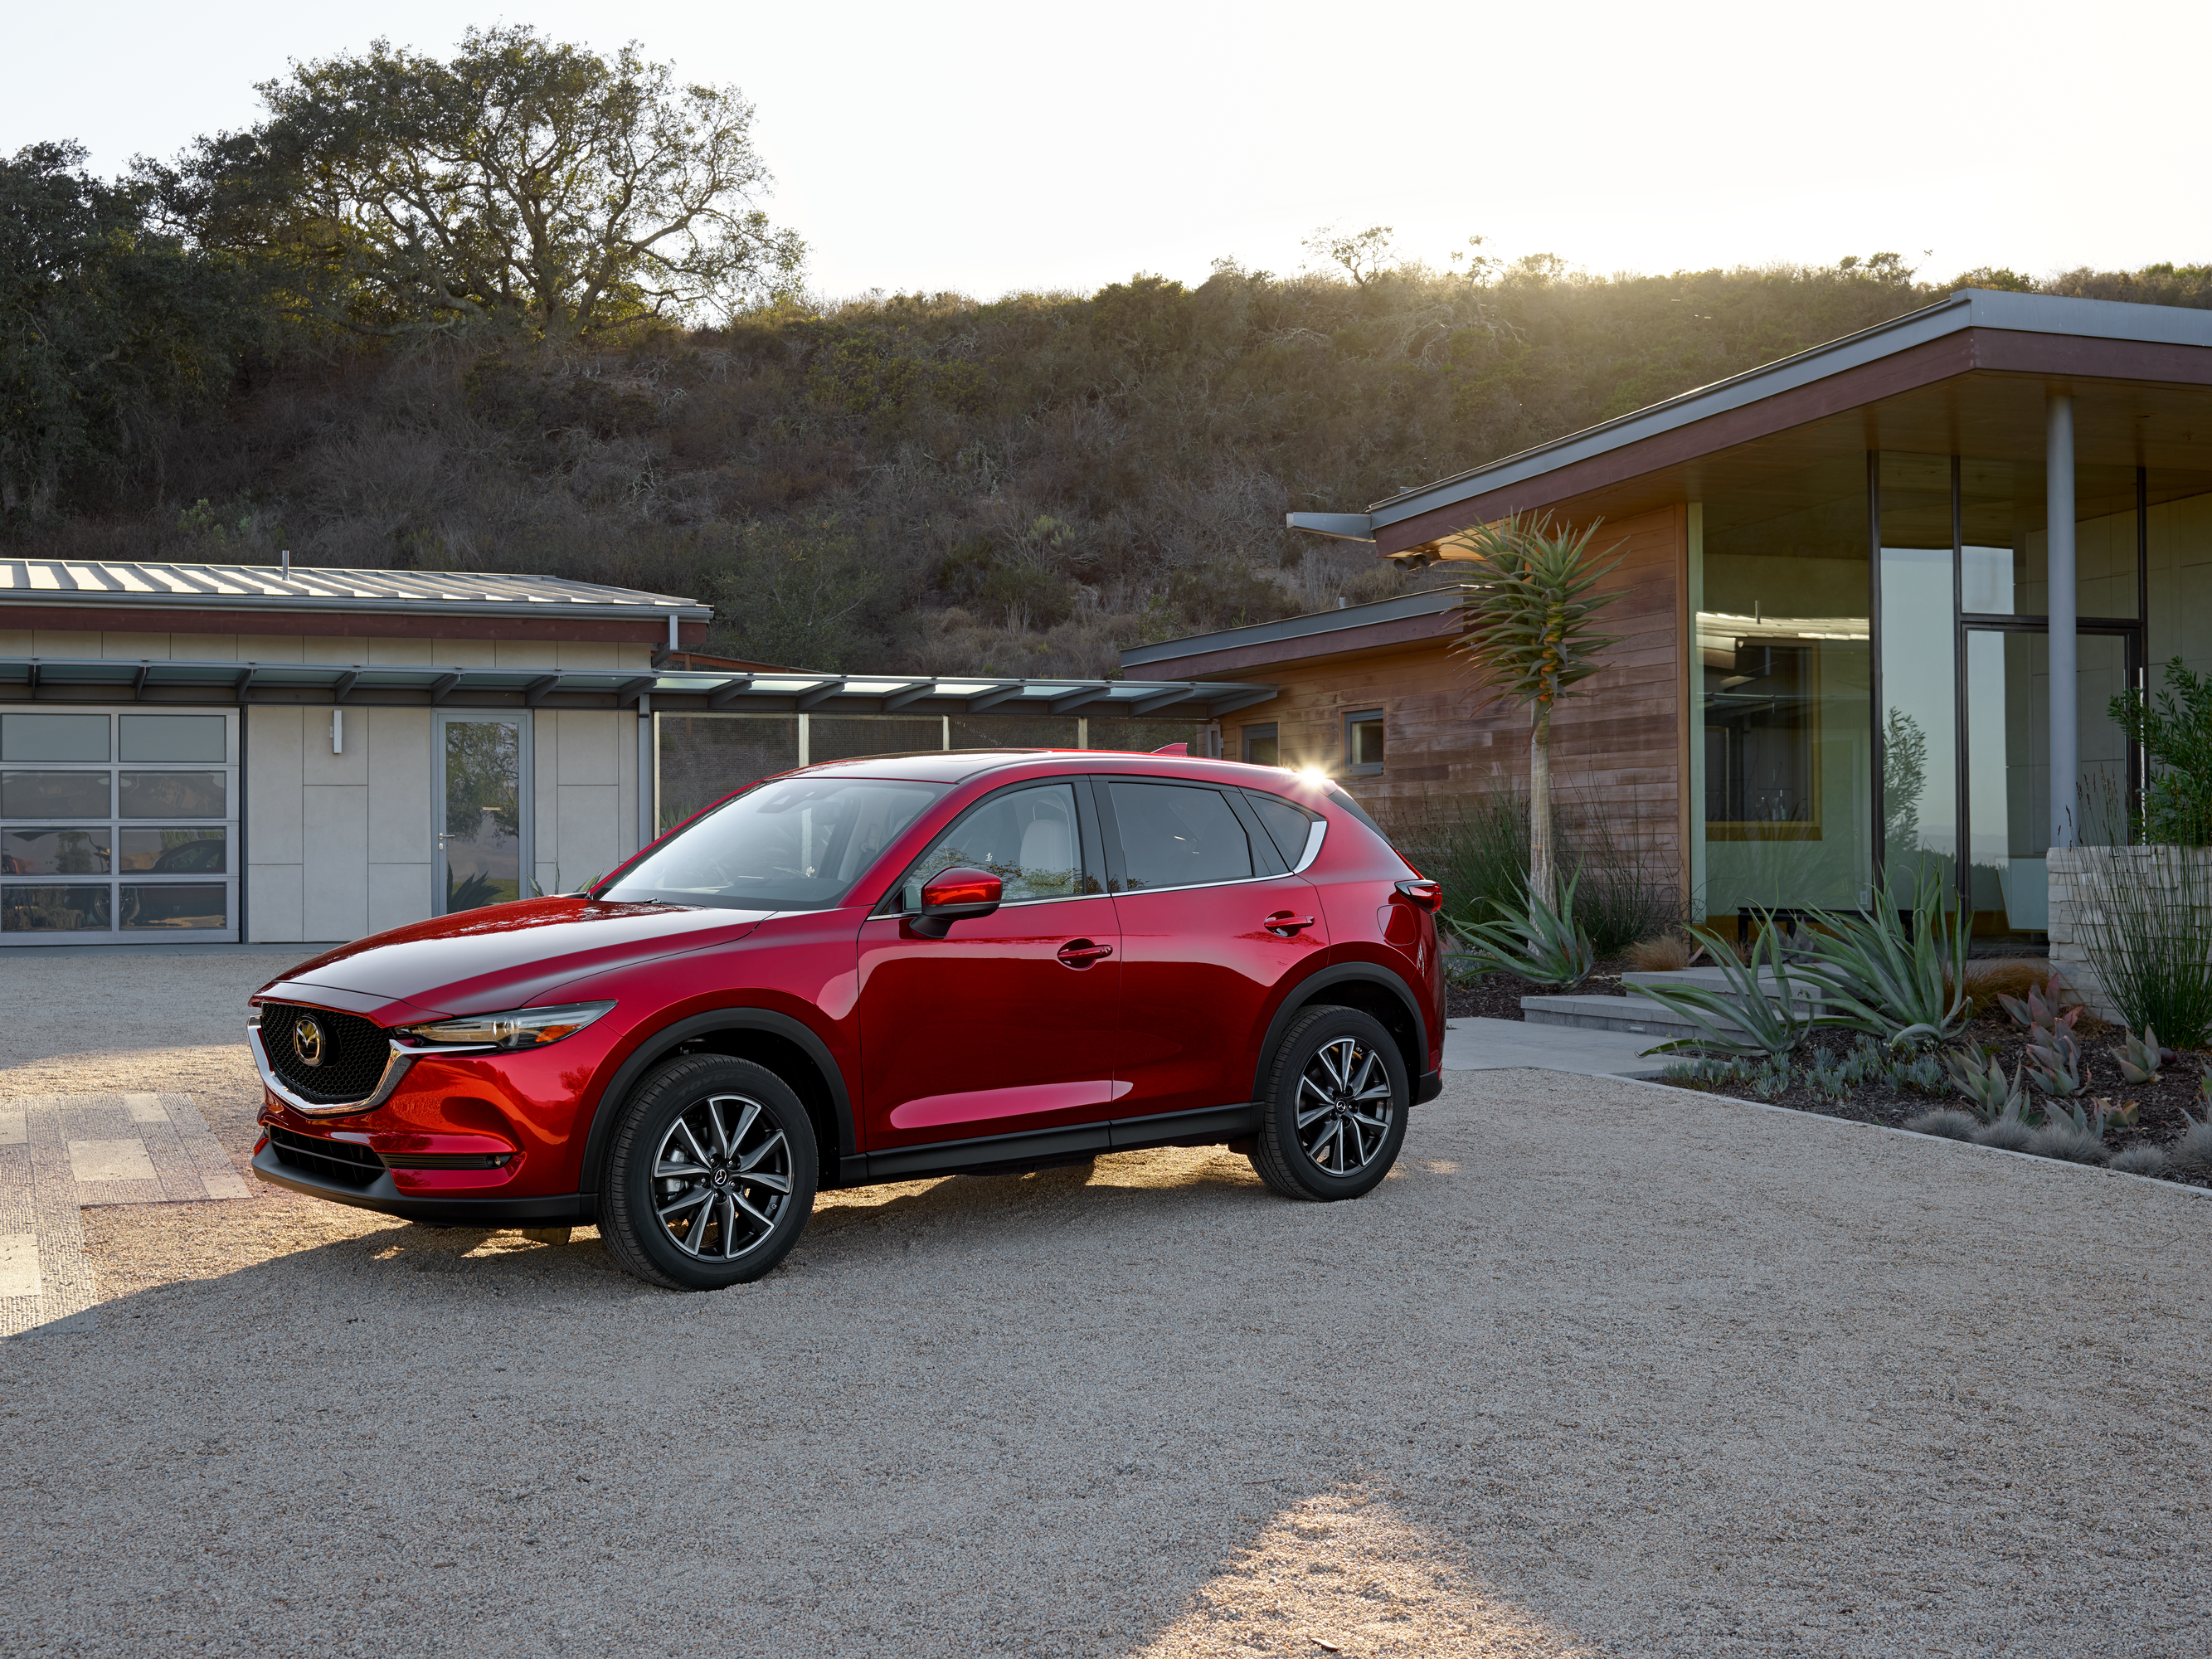 CX-5 Finalist for Canadian Utility Vehicle of the Year